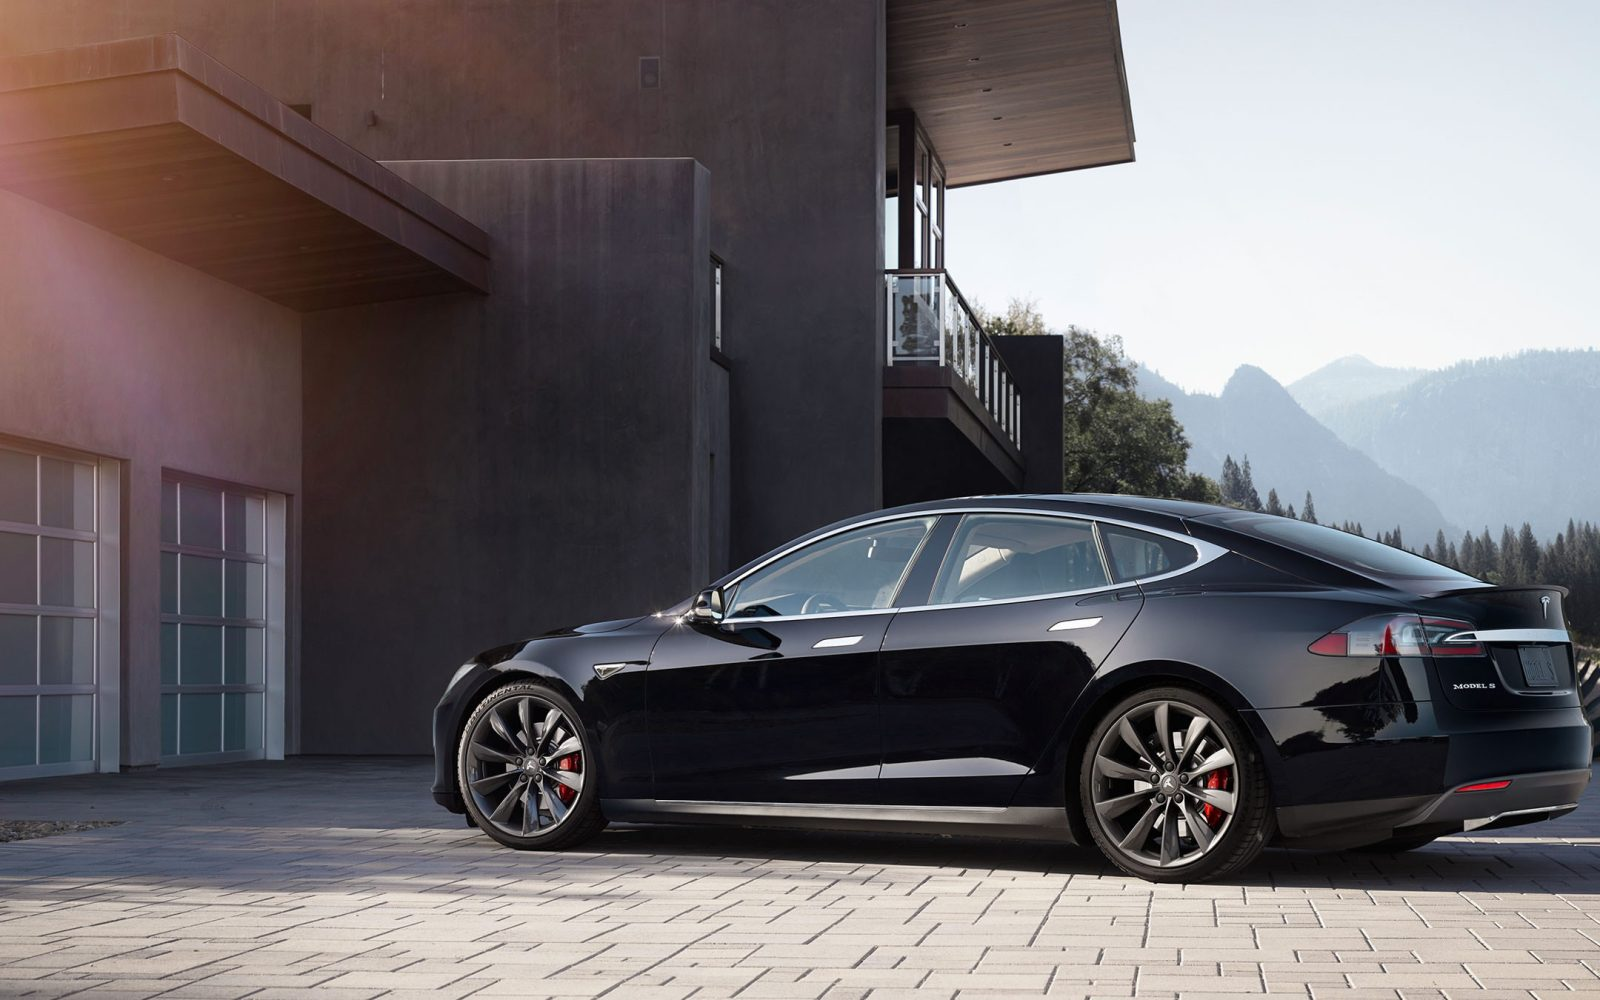 tesla model s 100d officially takes top spot for longest. Black Bedroom Furniture Sets. Home Design Ideas